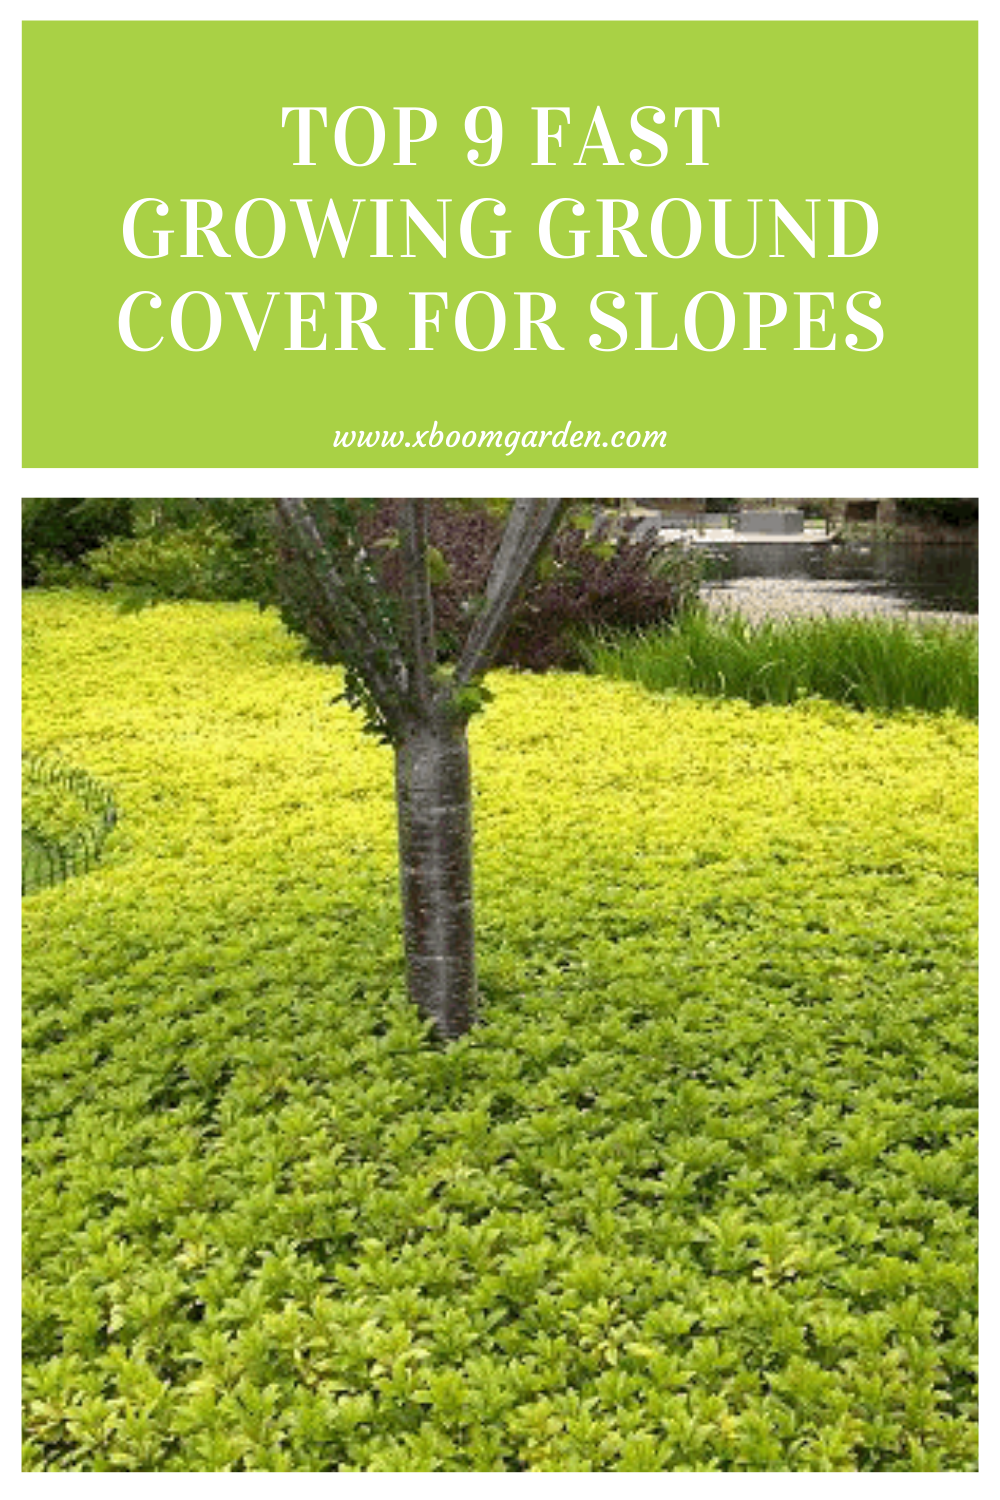 Top 9 Fast Growing Ground Cover For Slopes Ground Cover Ground Cover Plants Evergreen Plants